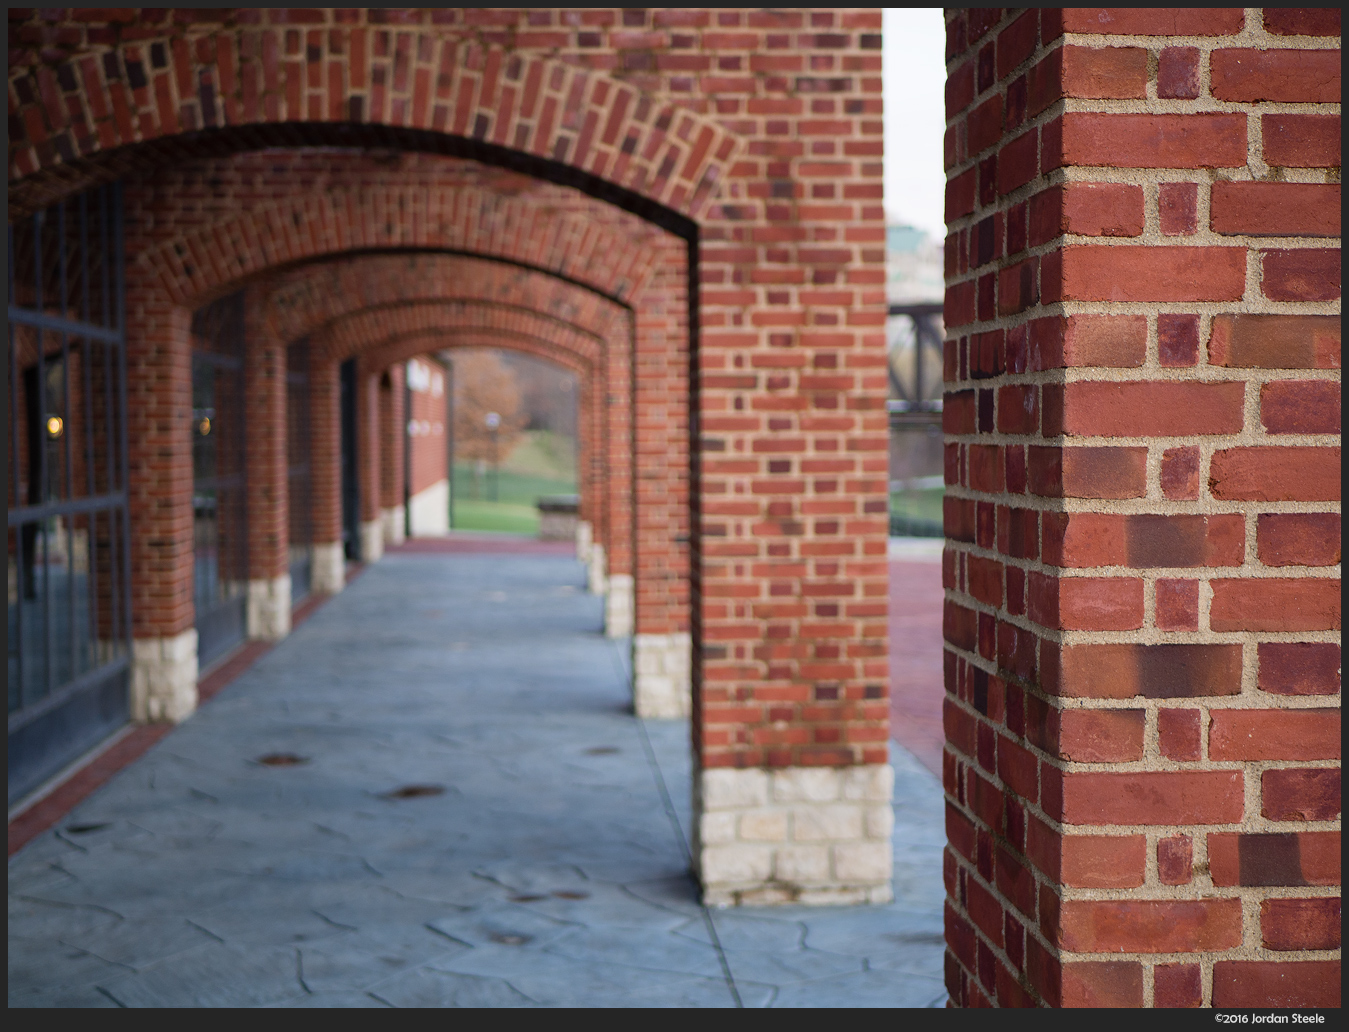 Brick Arches - Olympus OM-D E-M10 Mark II with Panasonic 25mm f/1.7 @ f/1.7